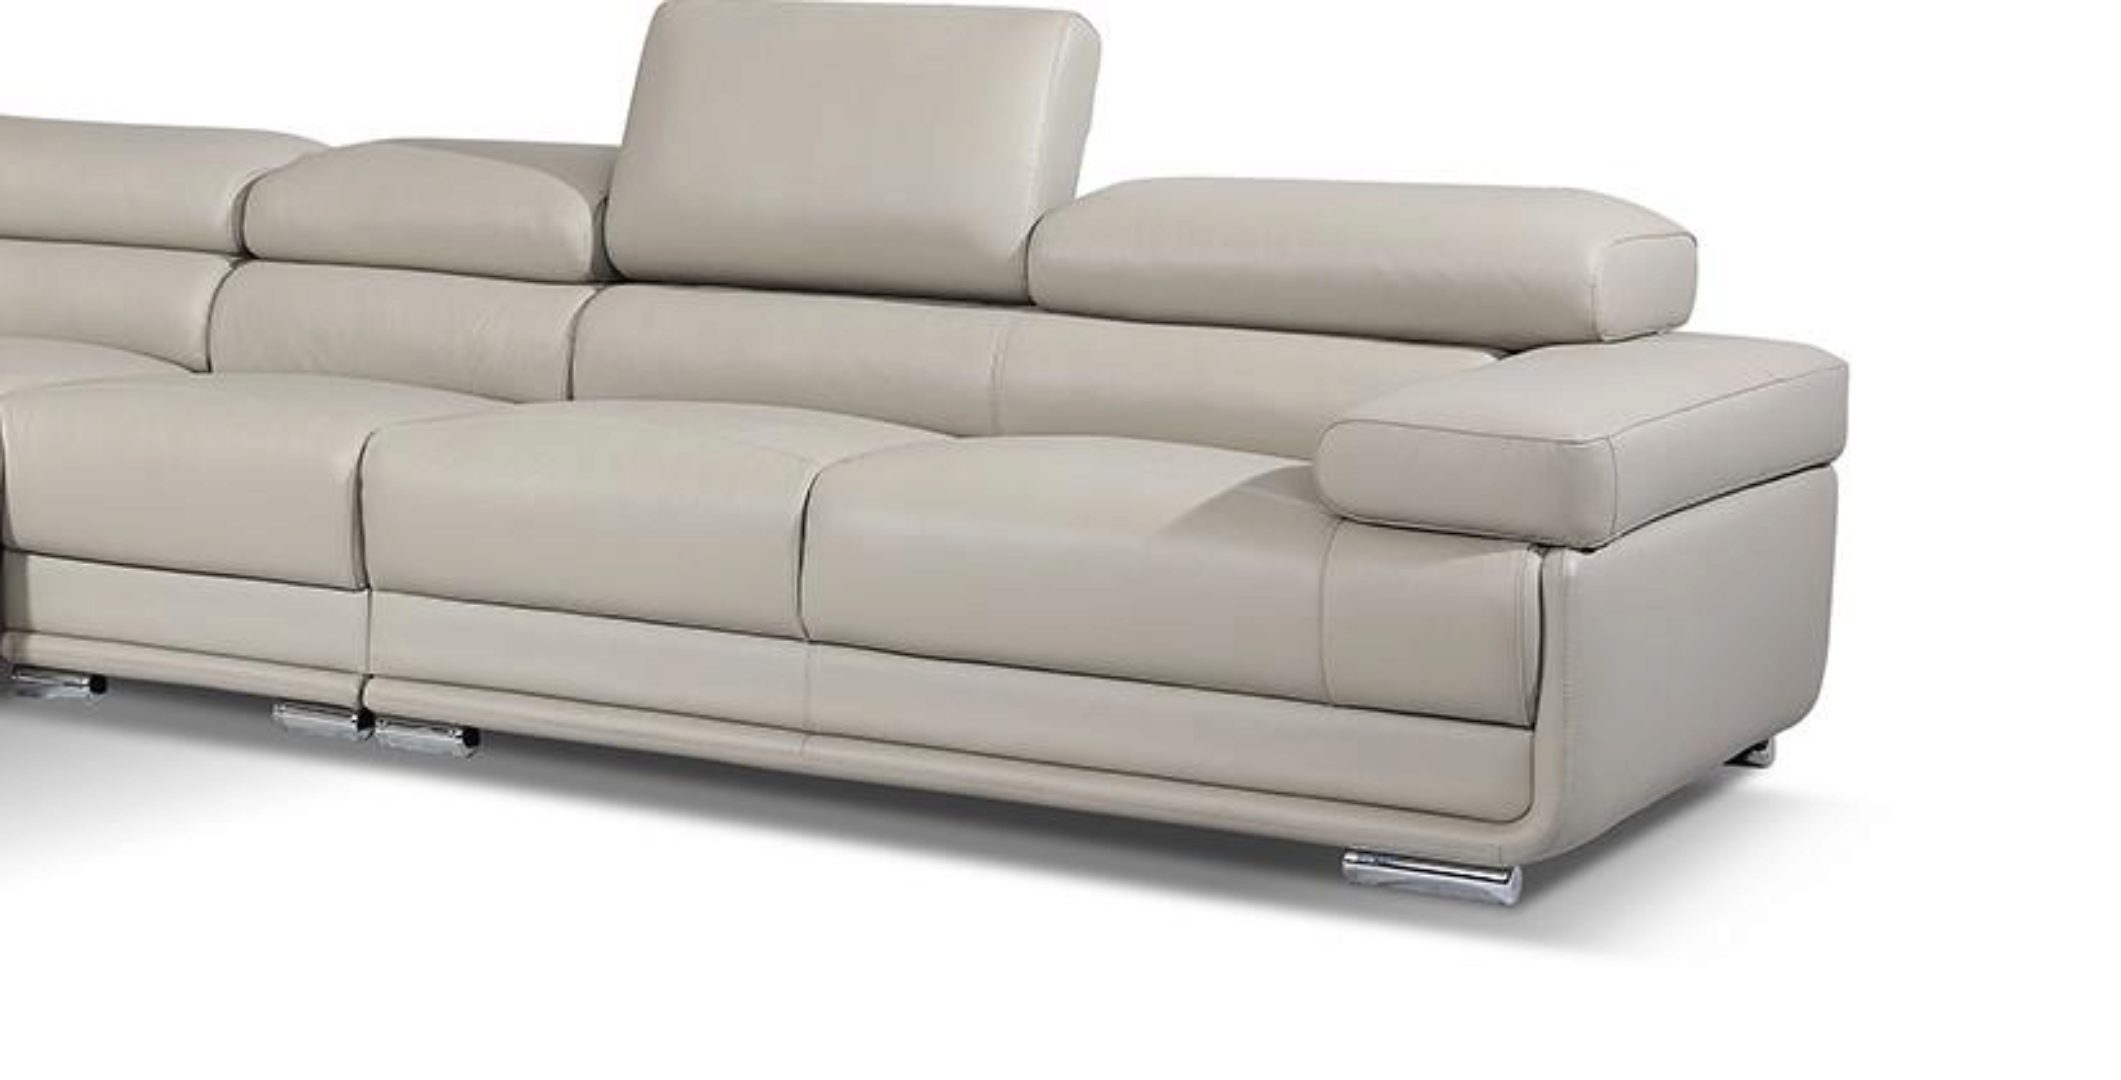 Light Grey Top Grain Leather Sectional Contemporary Modern Left Esf 2119 Esf 2119 Sectional Lhc